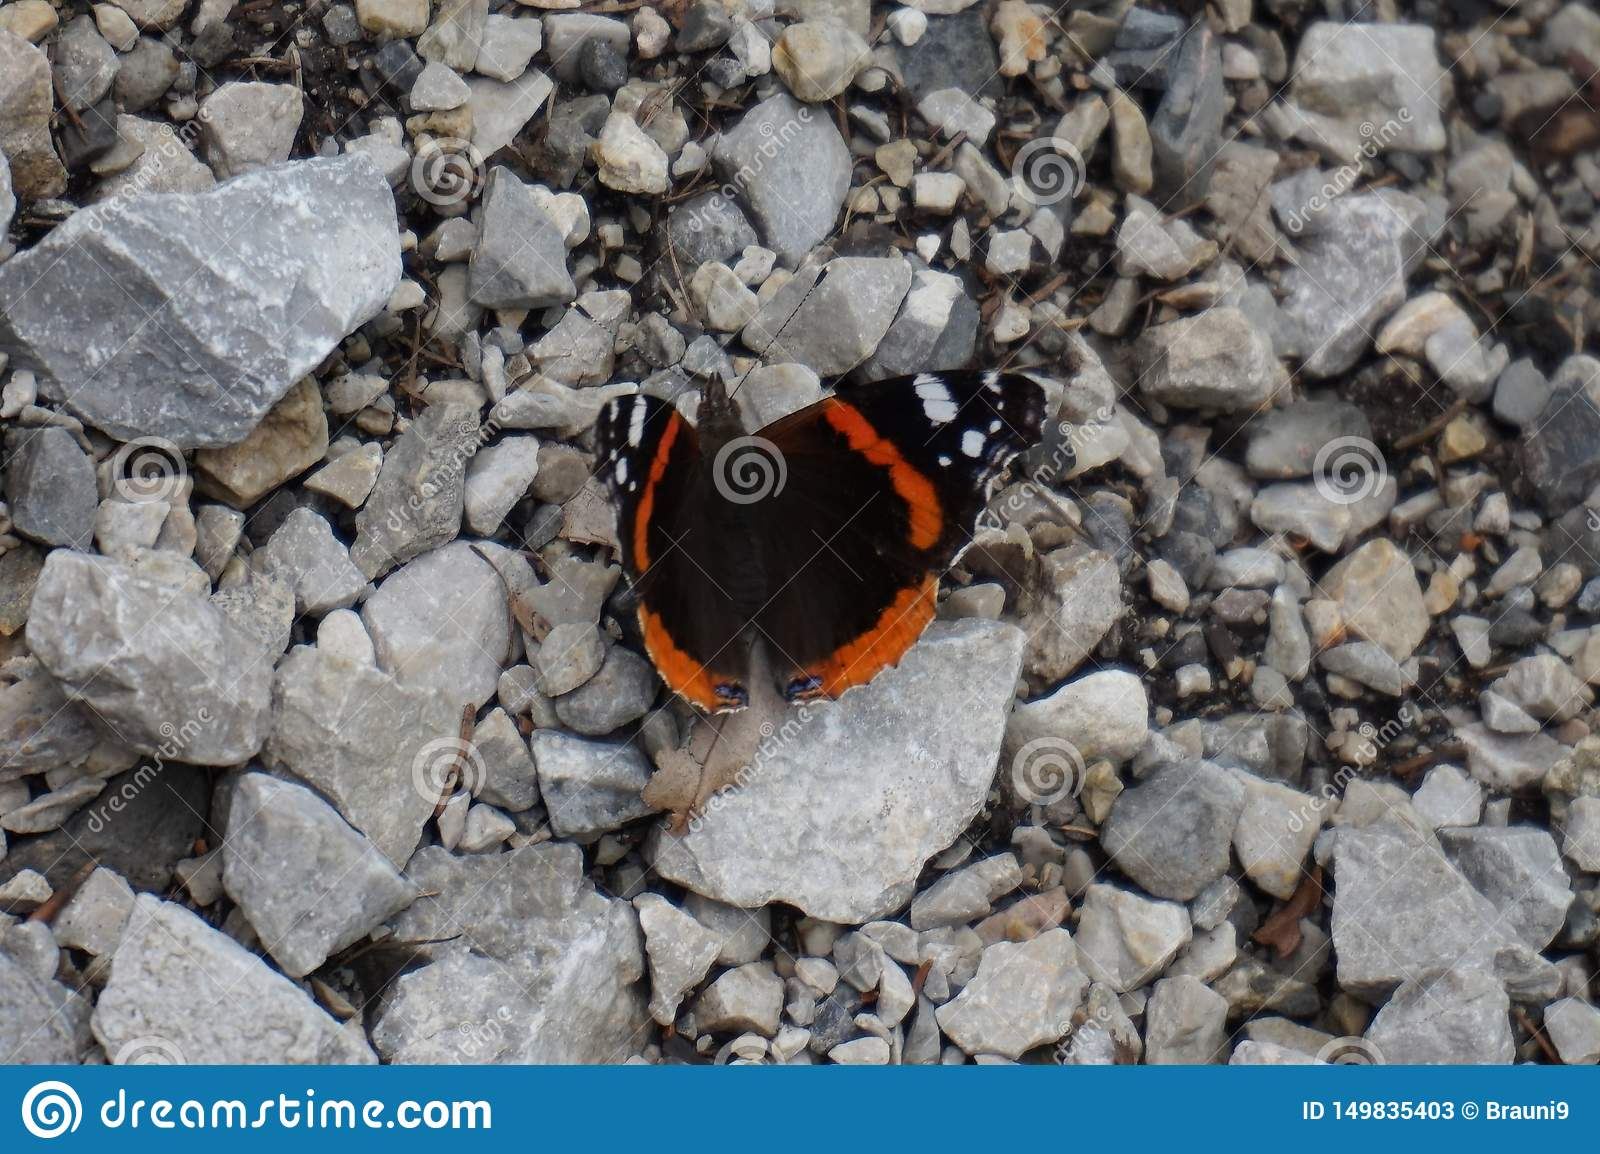 In spring, the Butterfly is basking in the sun sitting on a stone